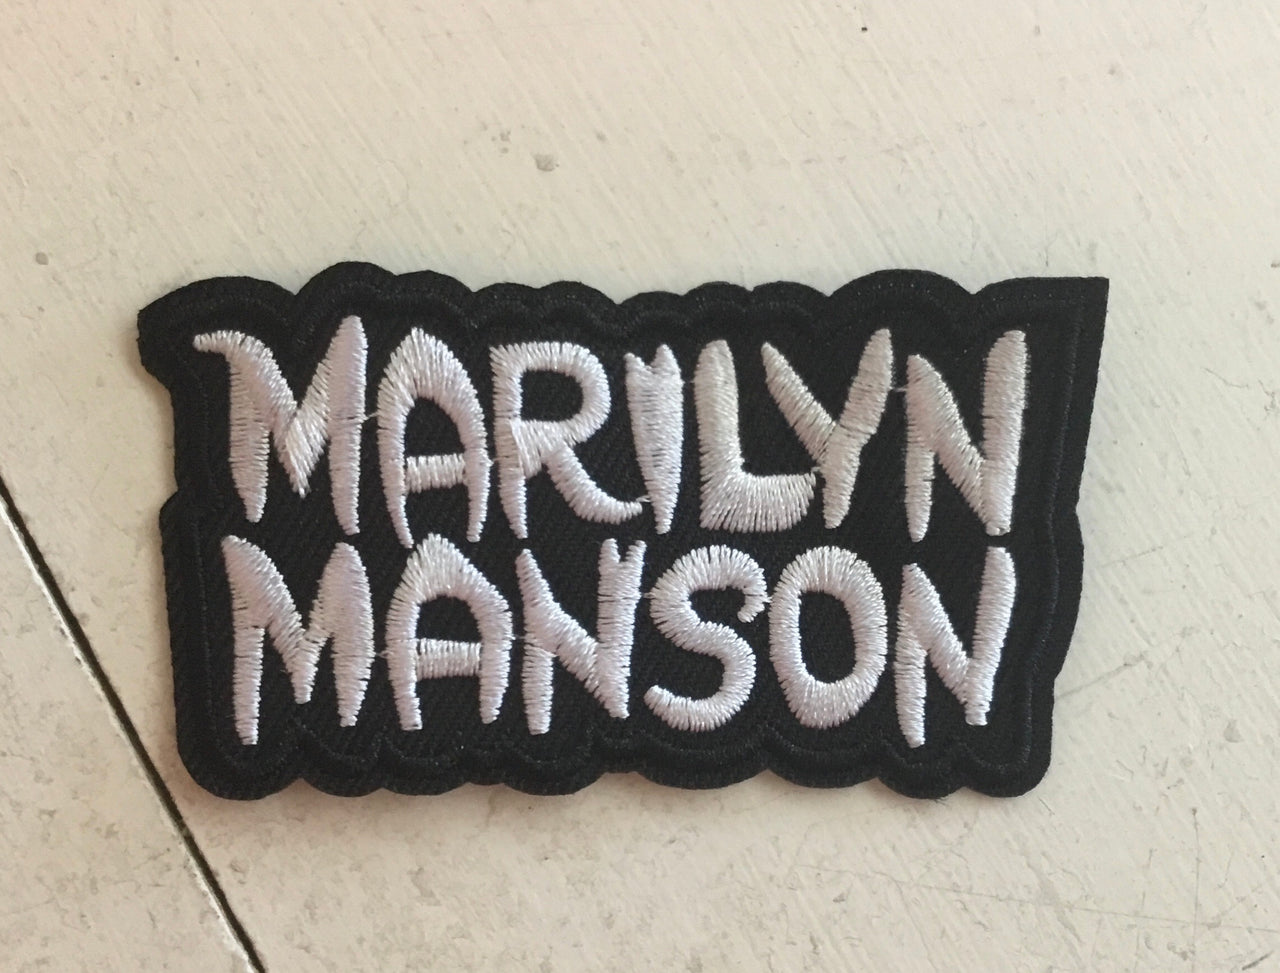 Patch - Marilyn Manson